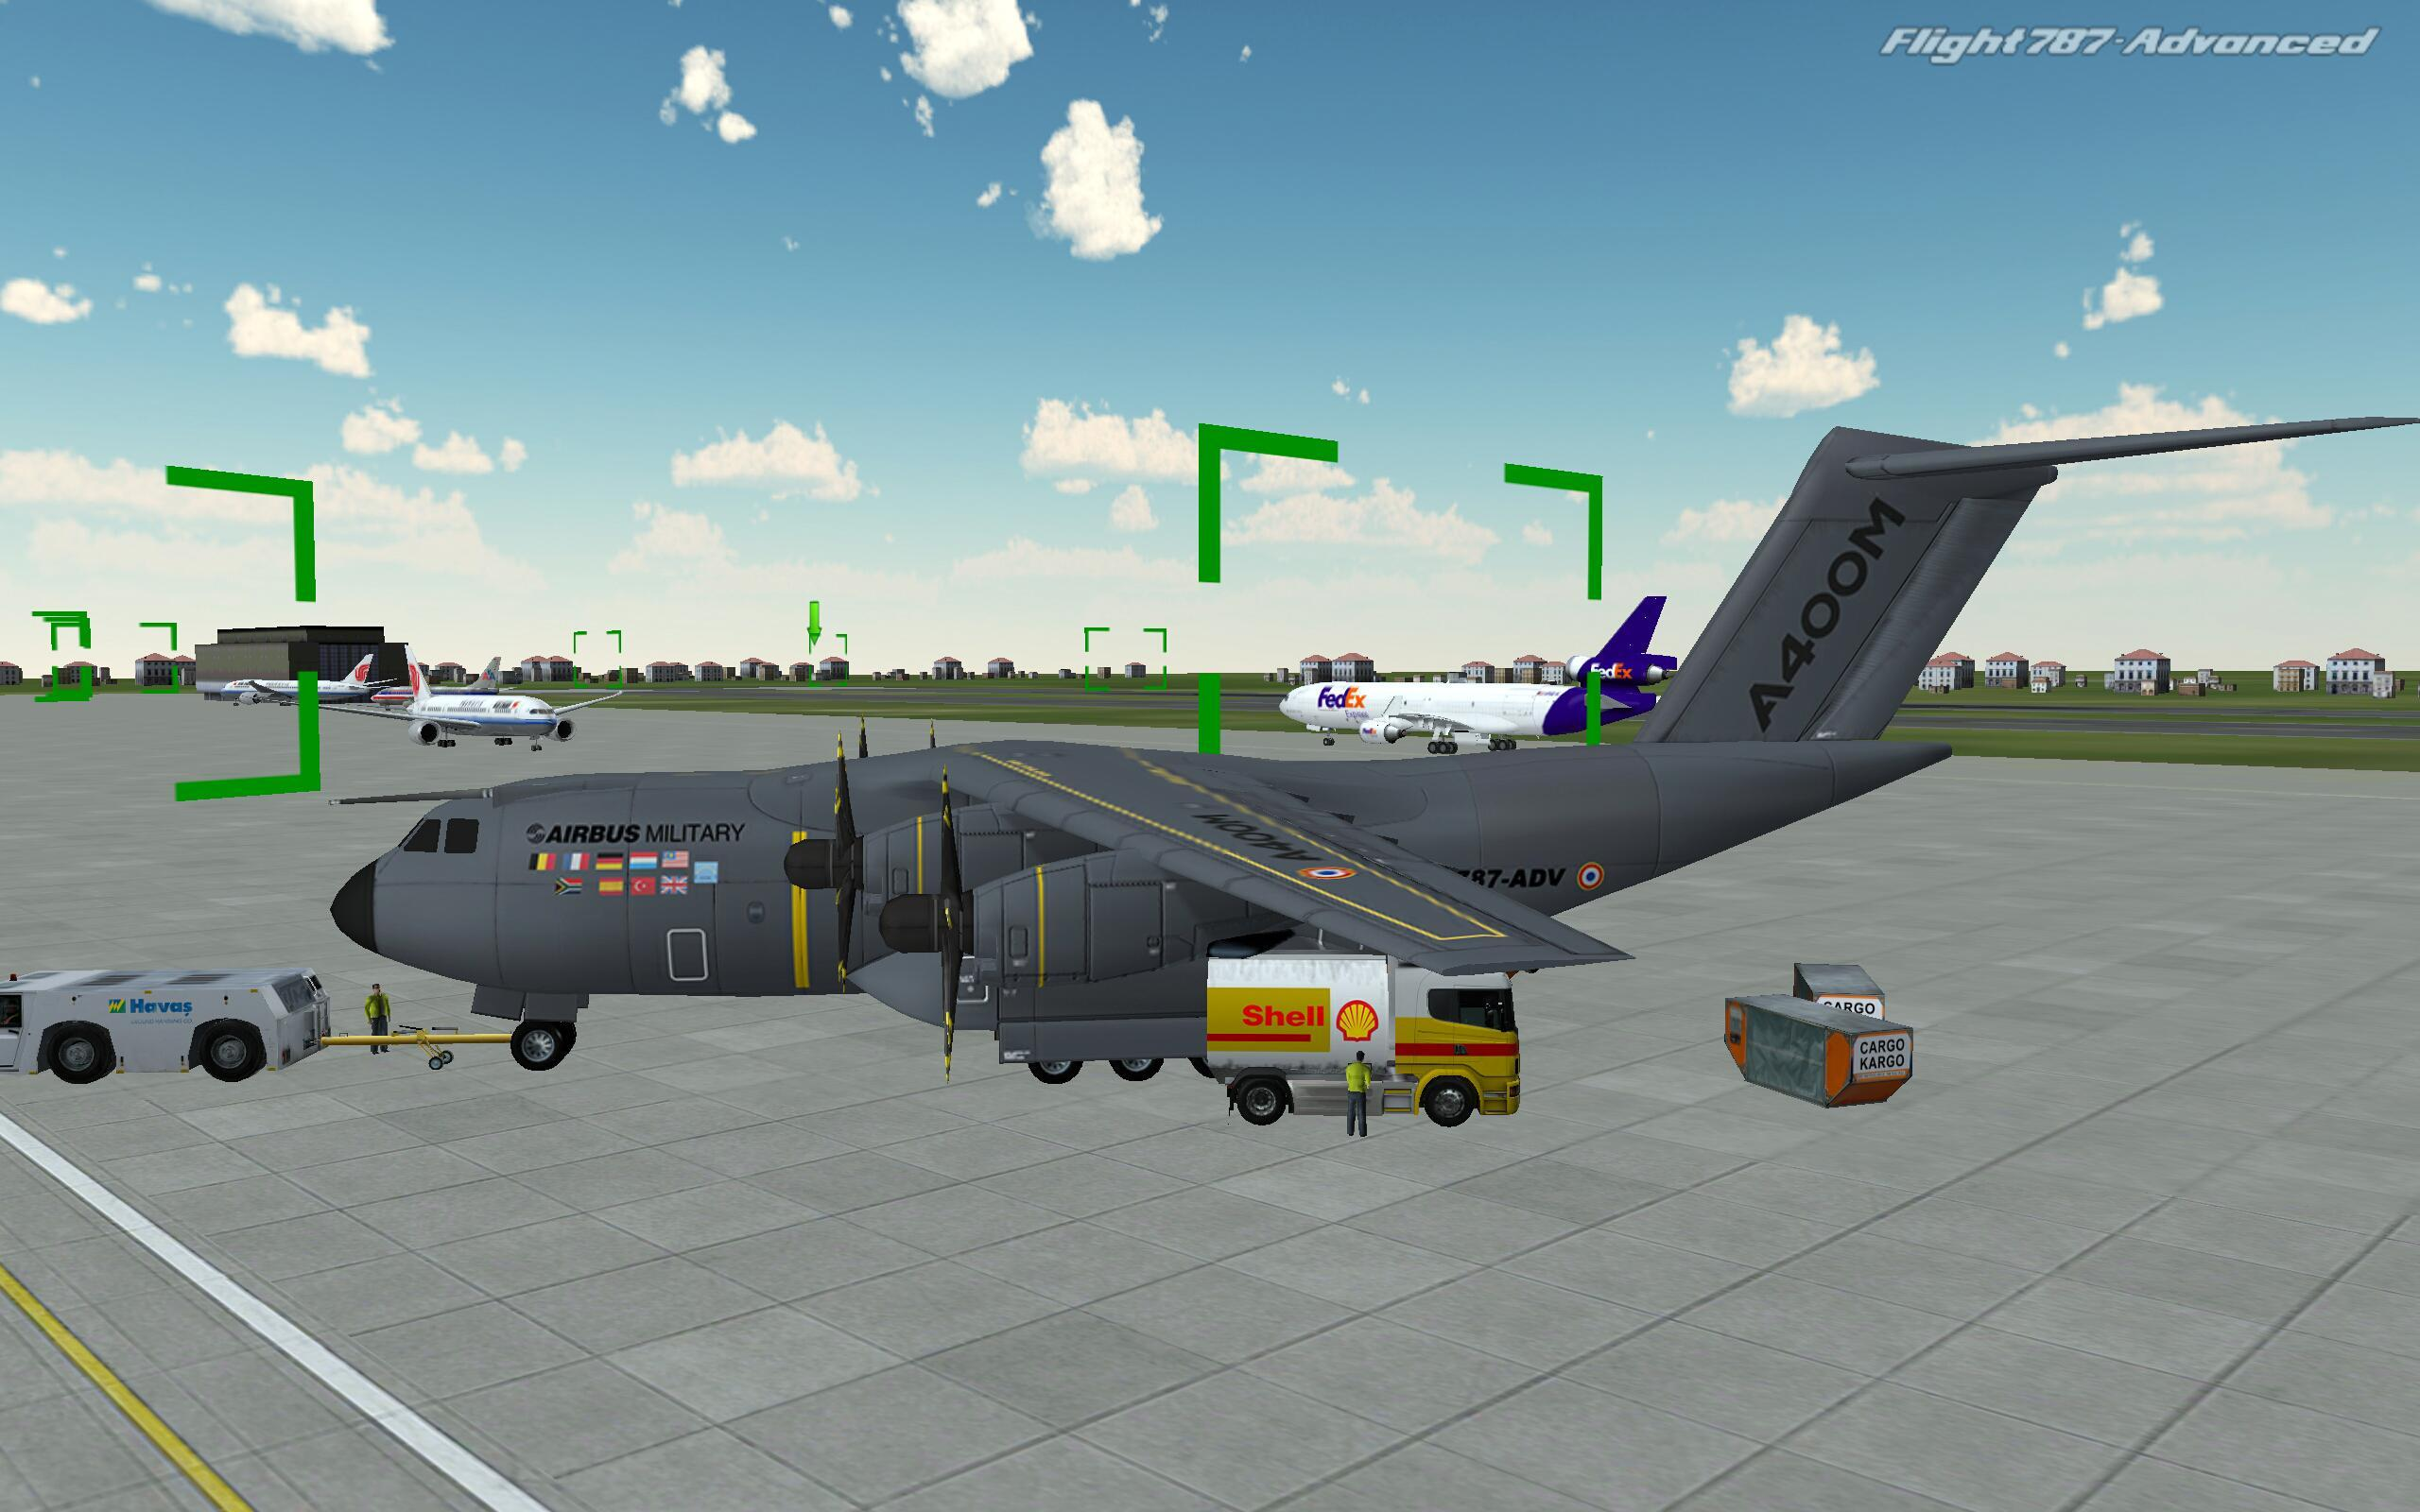 Flight 787 - Advanced - Lite for Android - APK Download